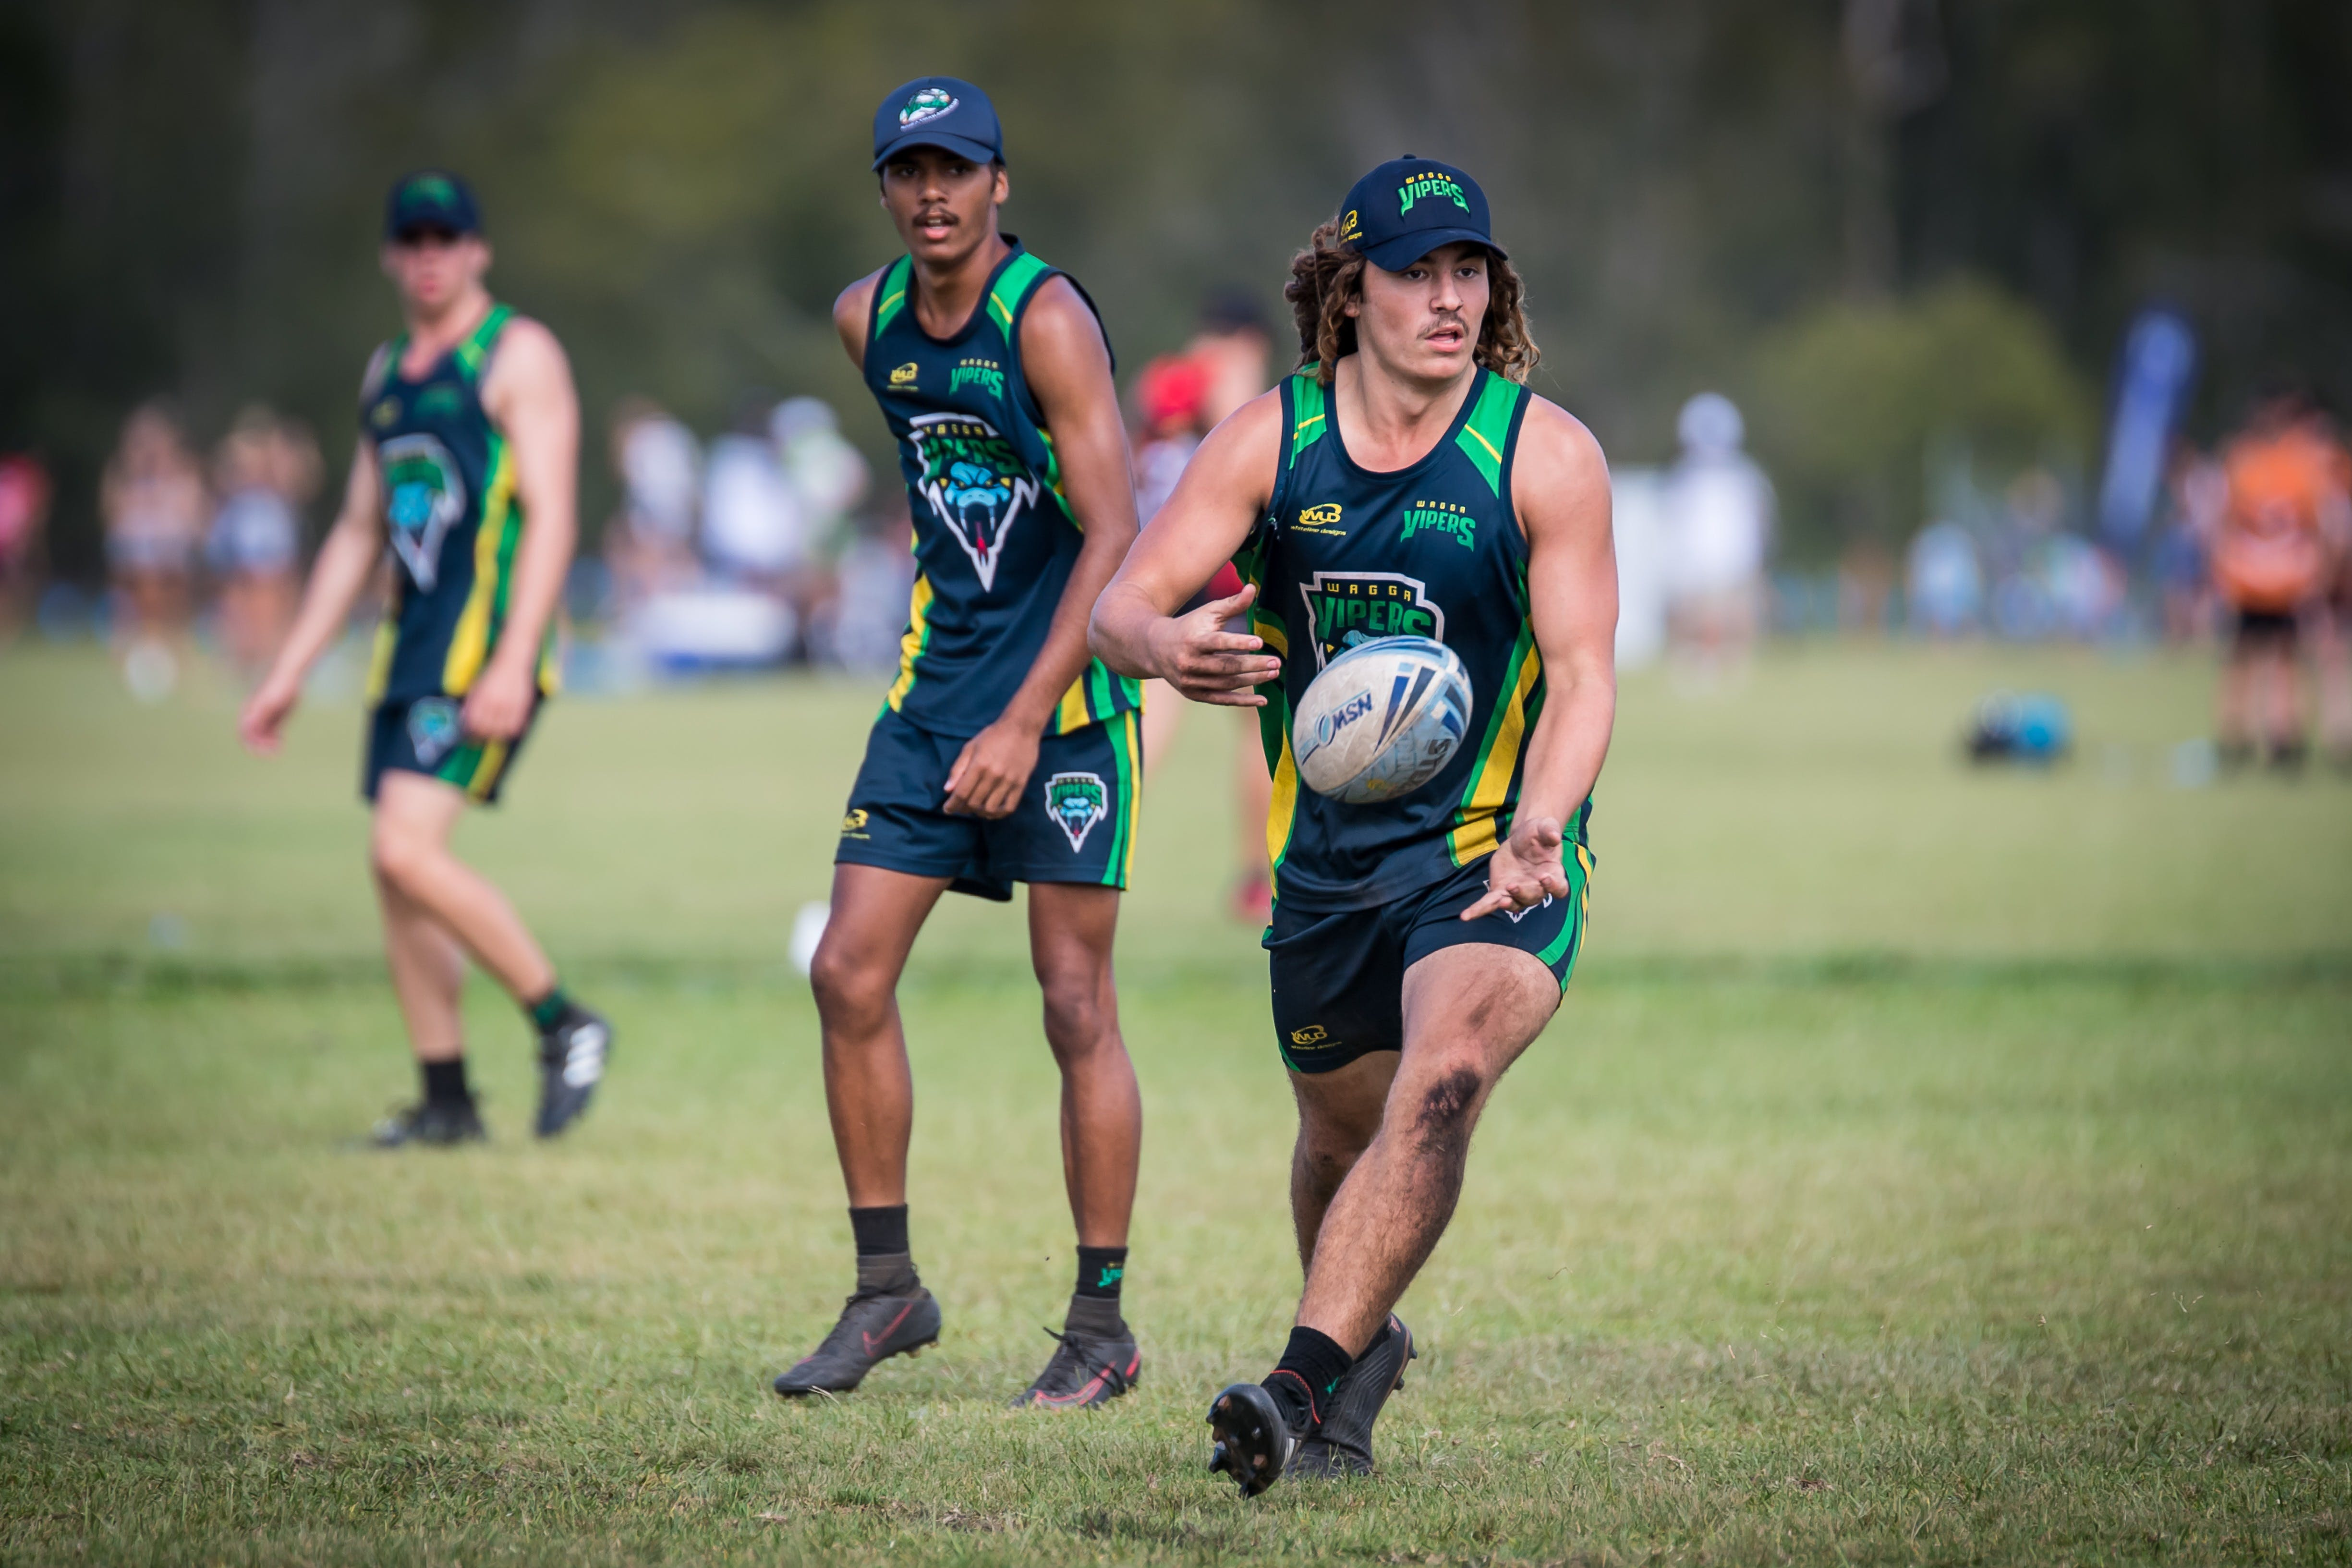 NSW Touch Junior State Cup Southern Conference - Pubs and Clubs